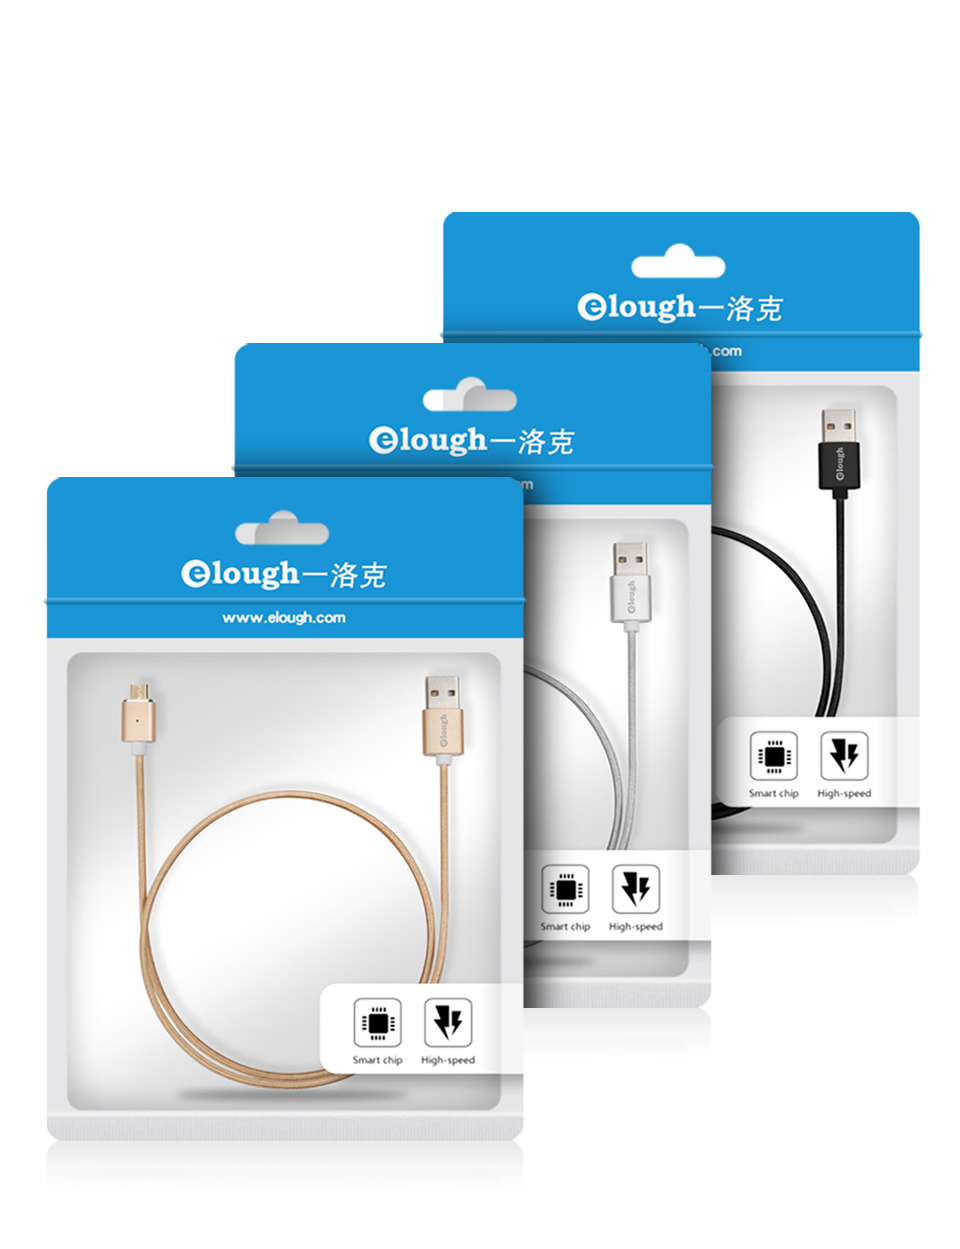 Elough E03 Magnetic Micro USB Cable Charger For Fast Charging And Magnetic Data Cable For Phones 12